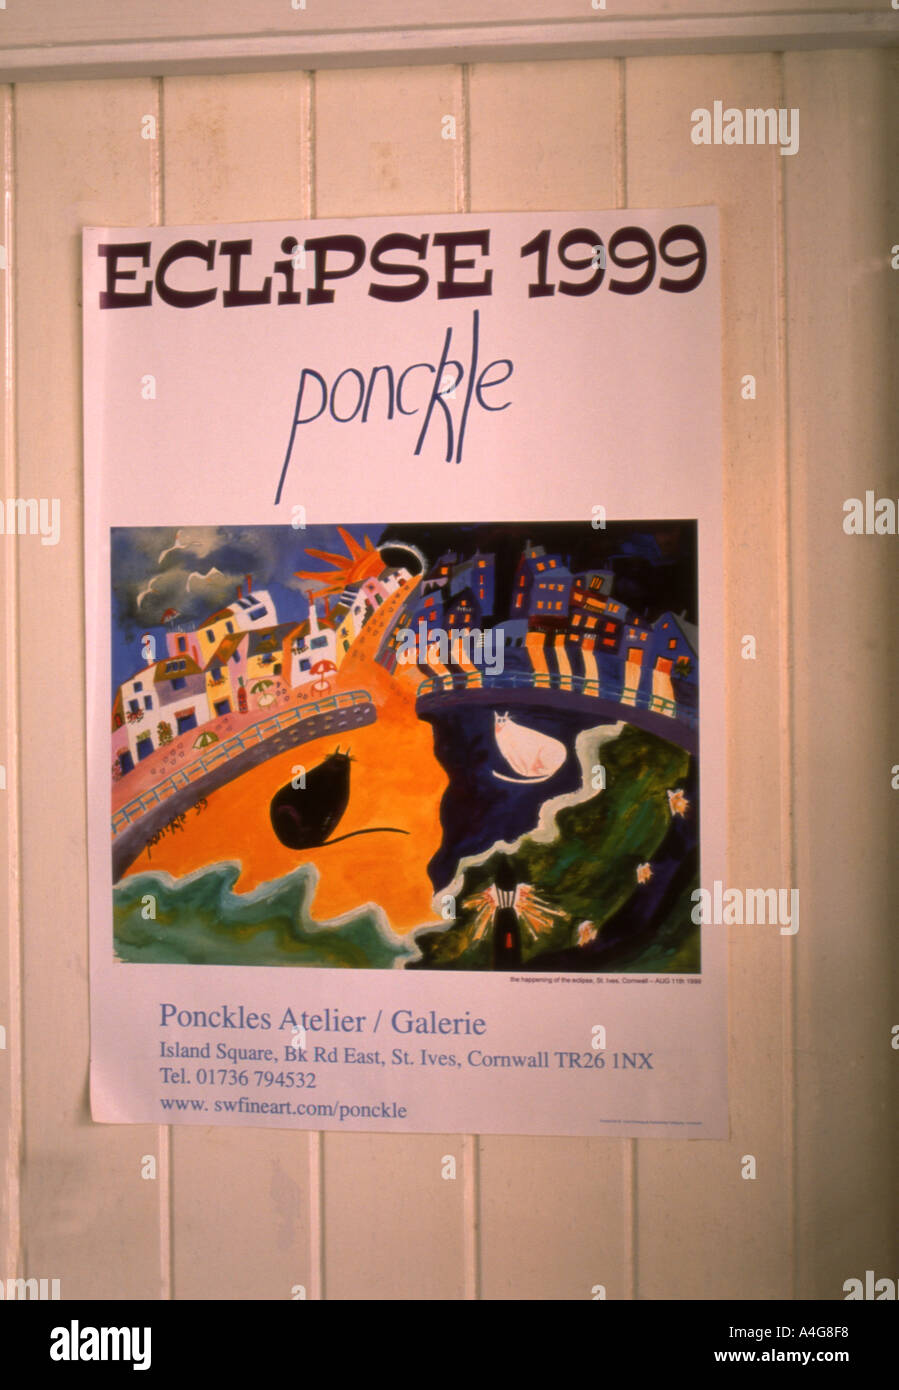 Ponckles poster of the 1999 eclipse as seen by her at St Ives Cornwall England number 1682 - Stock Image